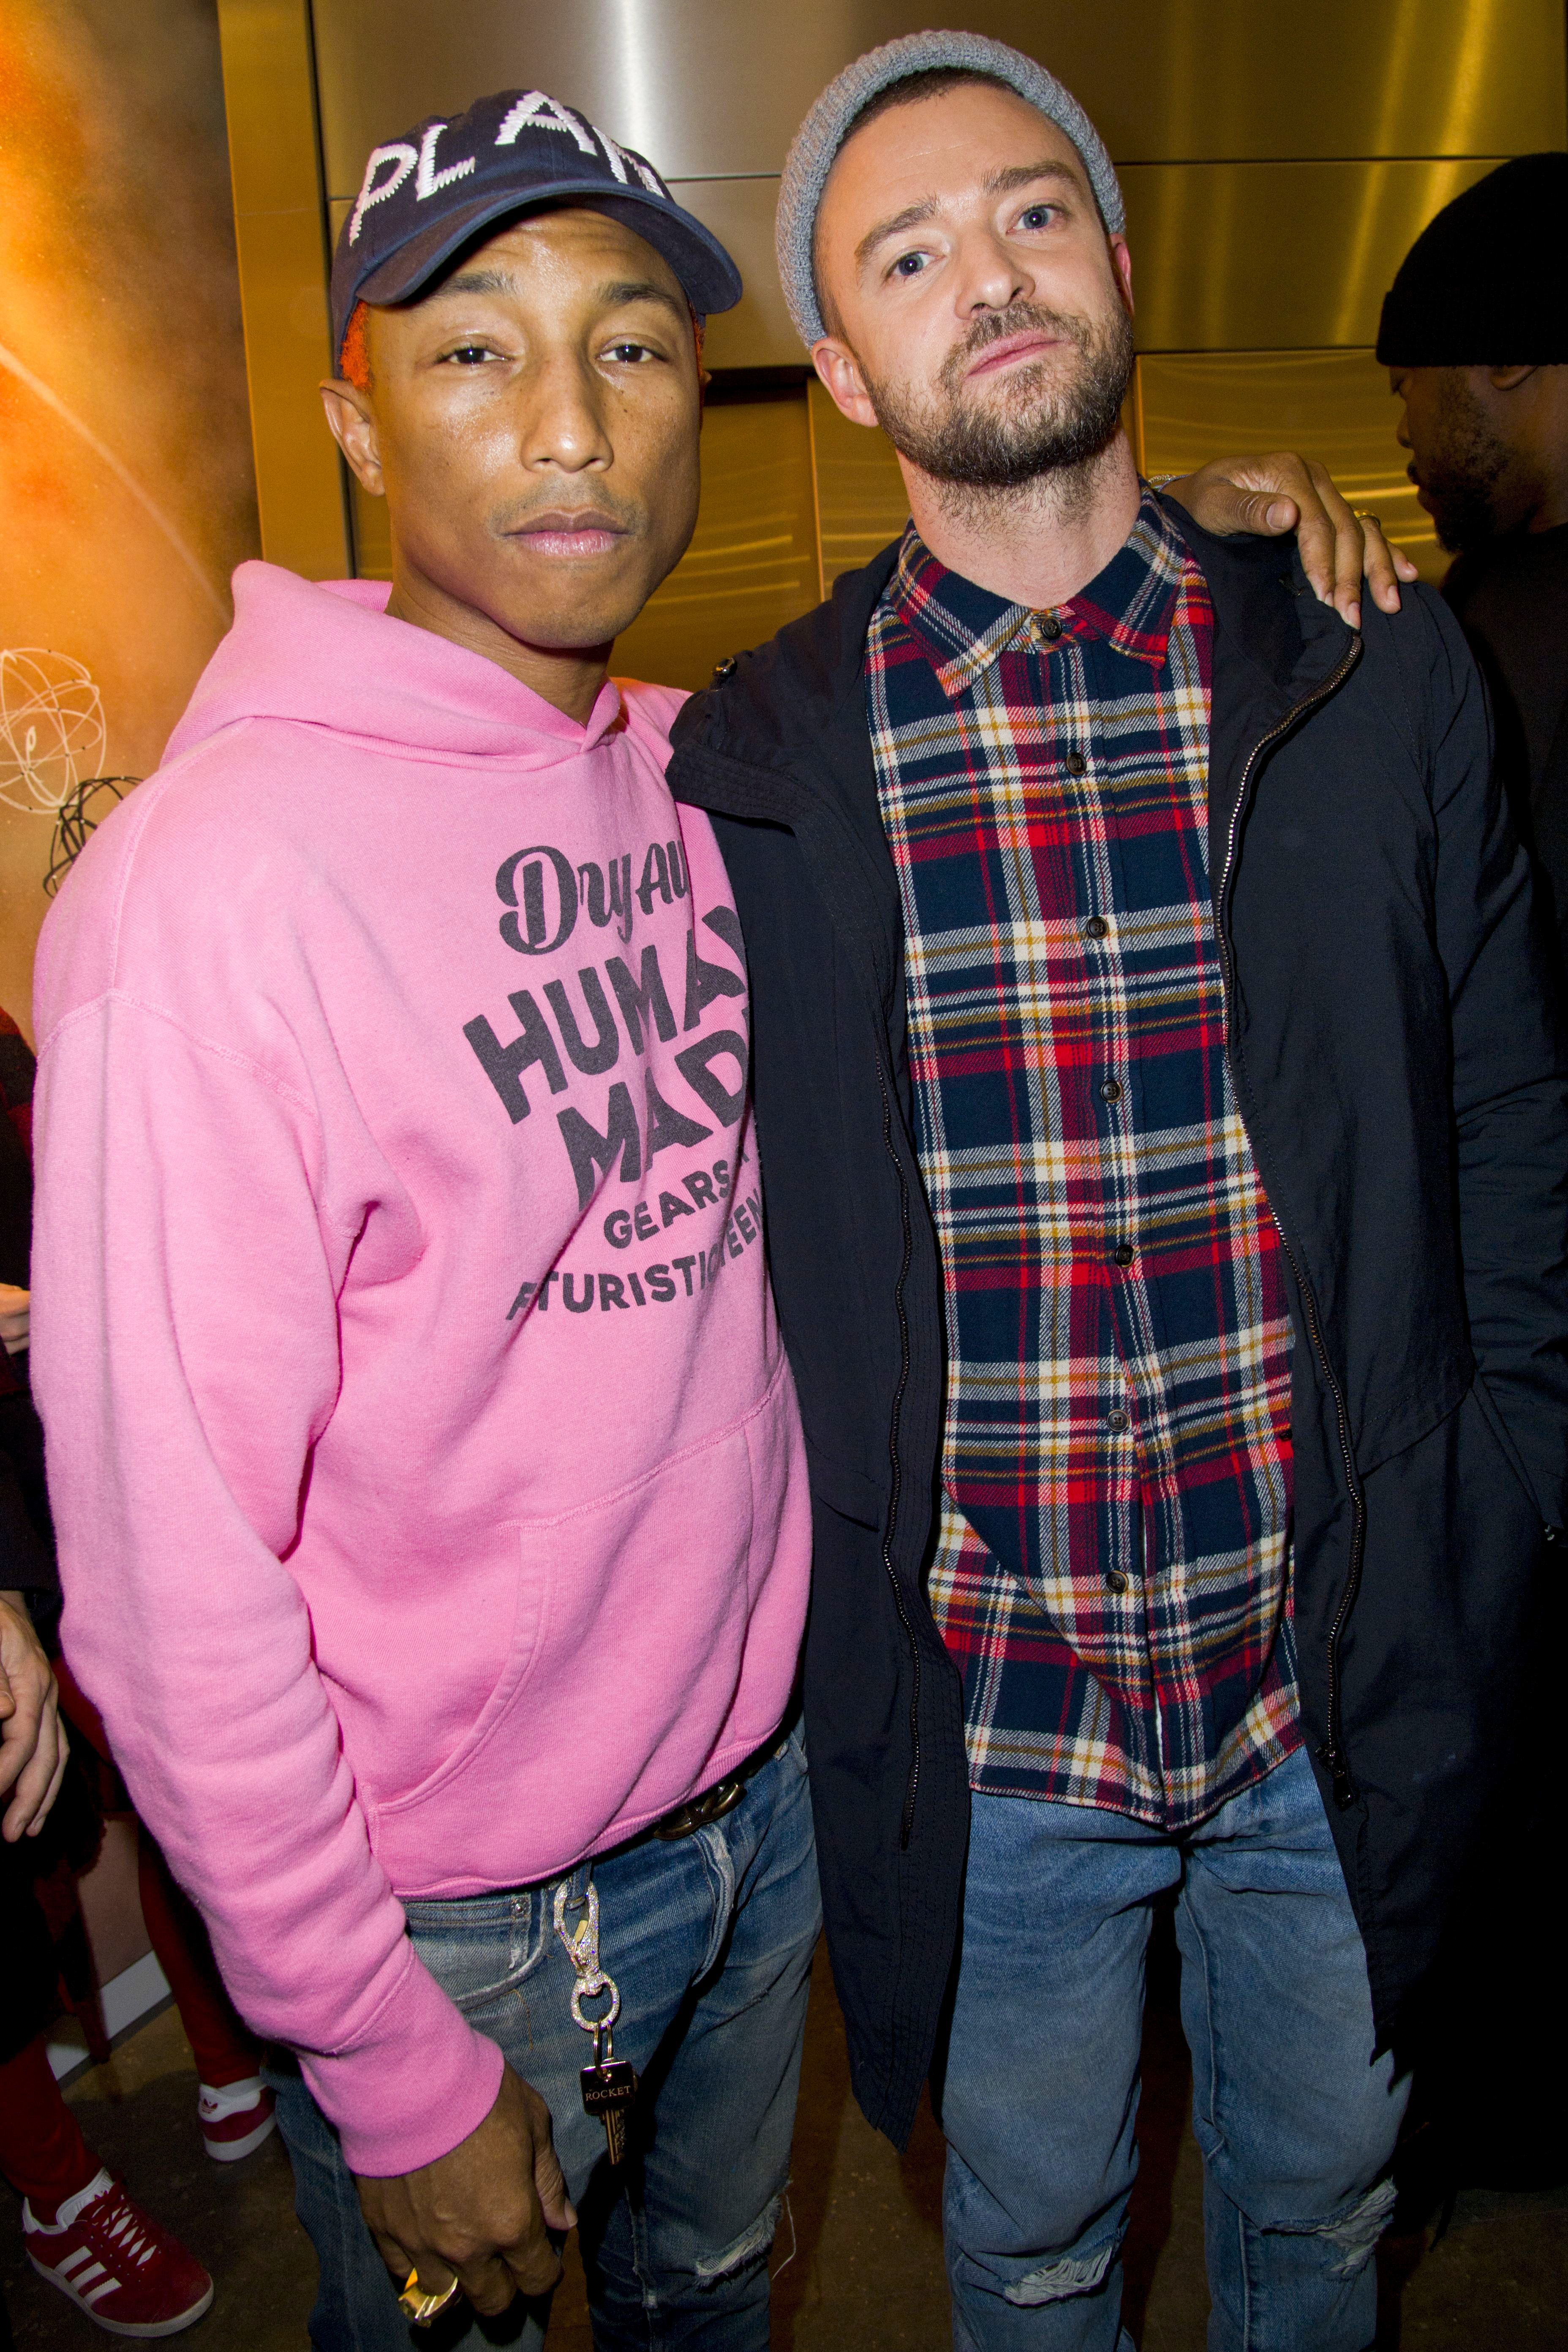 Pharrell Williams and Justin Timberlake attend the Chanel x Colette event in Paris on Nov. 21, 2017.